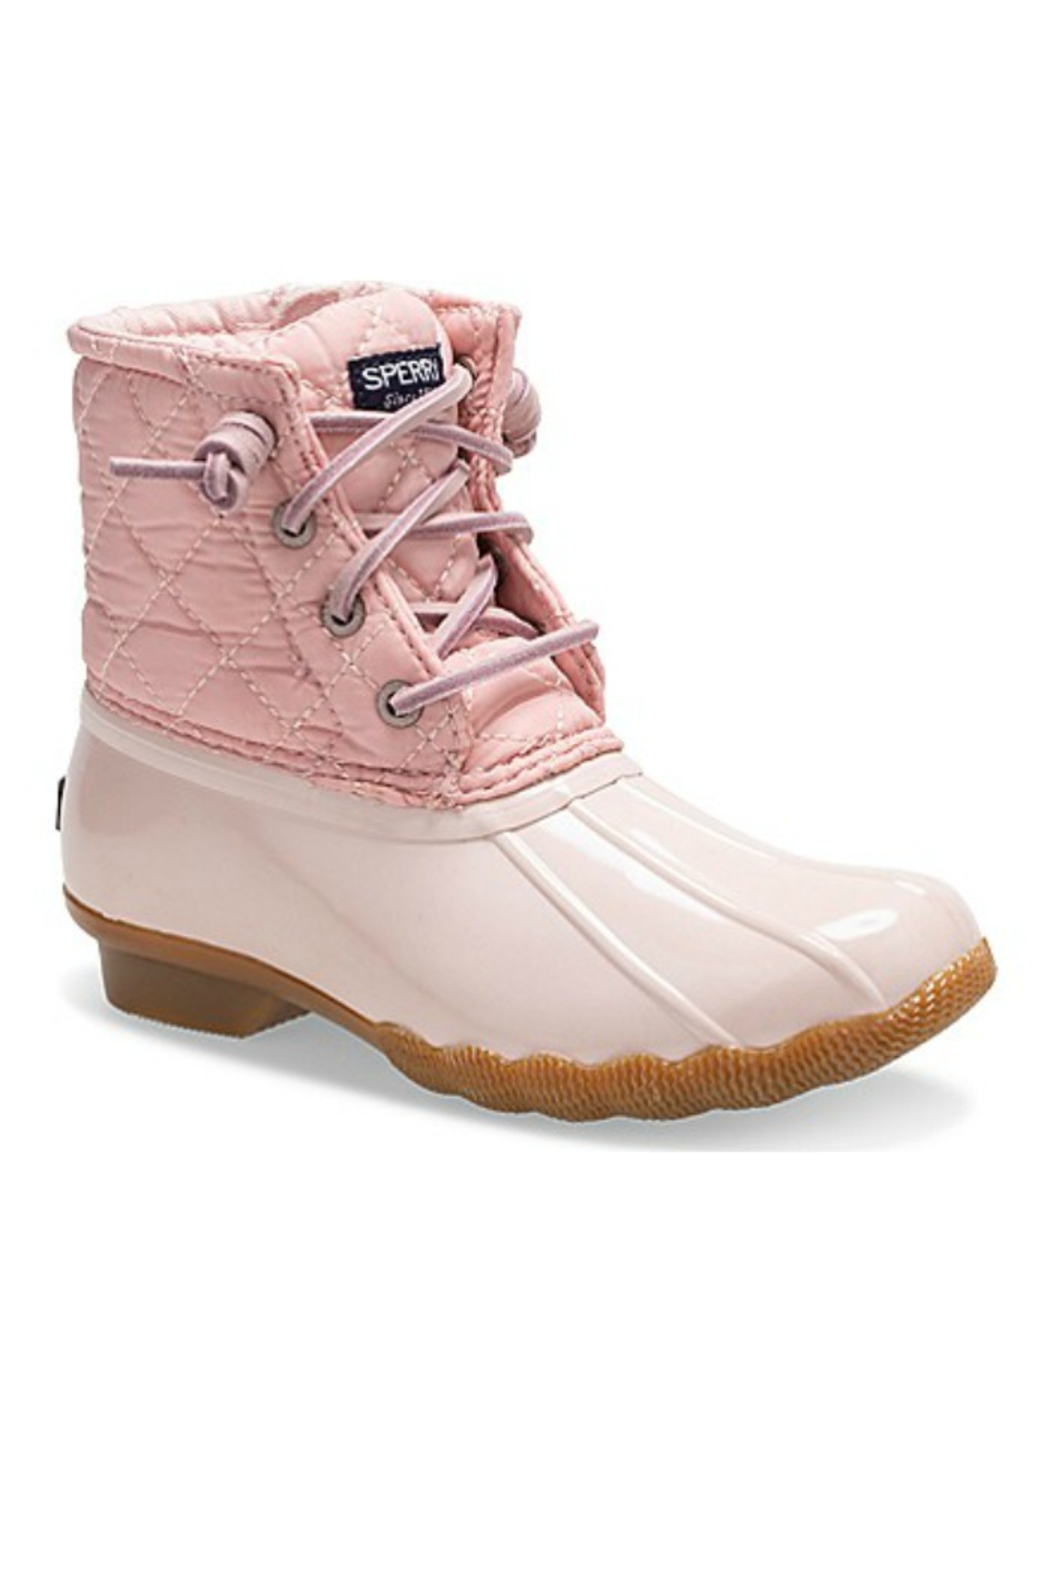 Sperry Big Kid's Saltwater Boot in Blush - Main Image